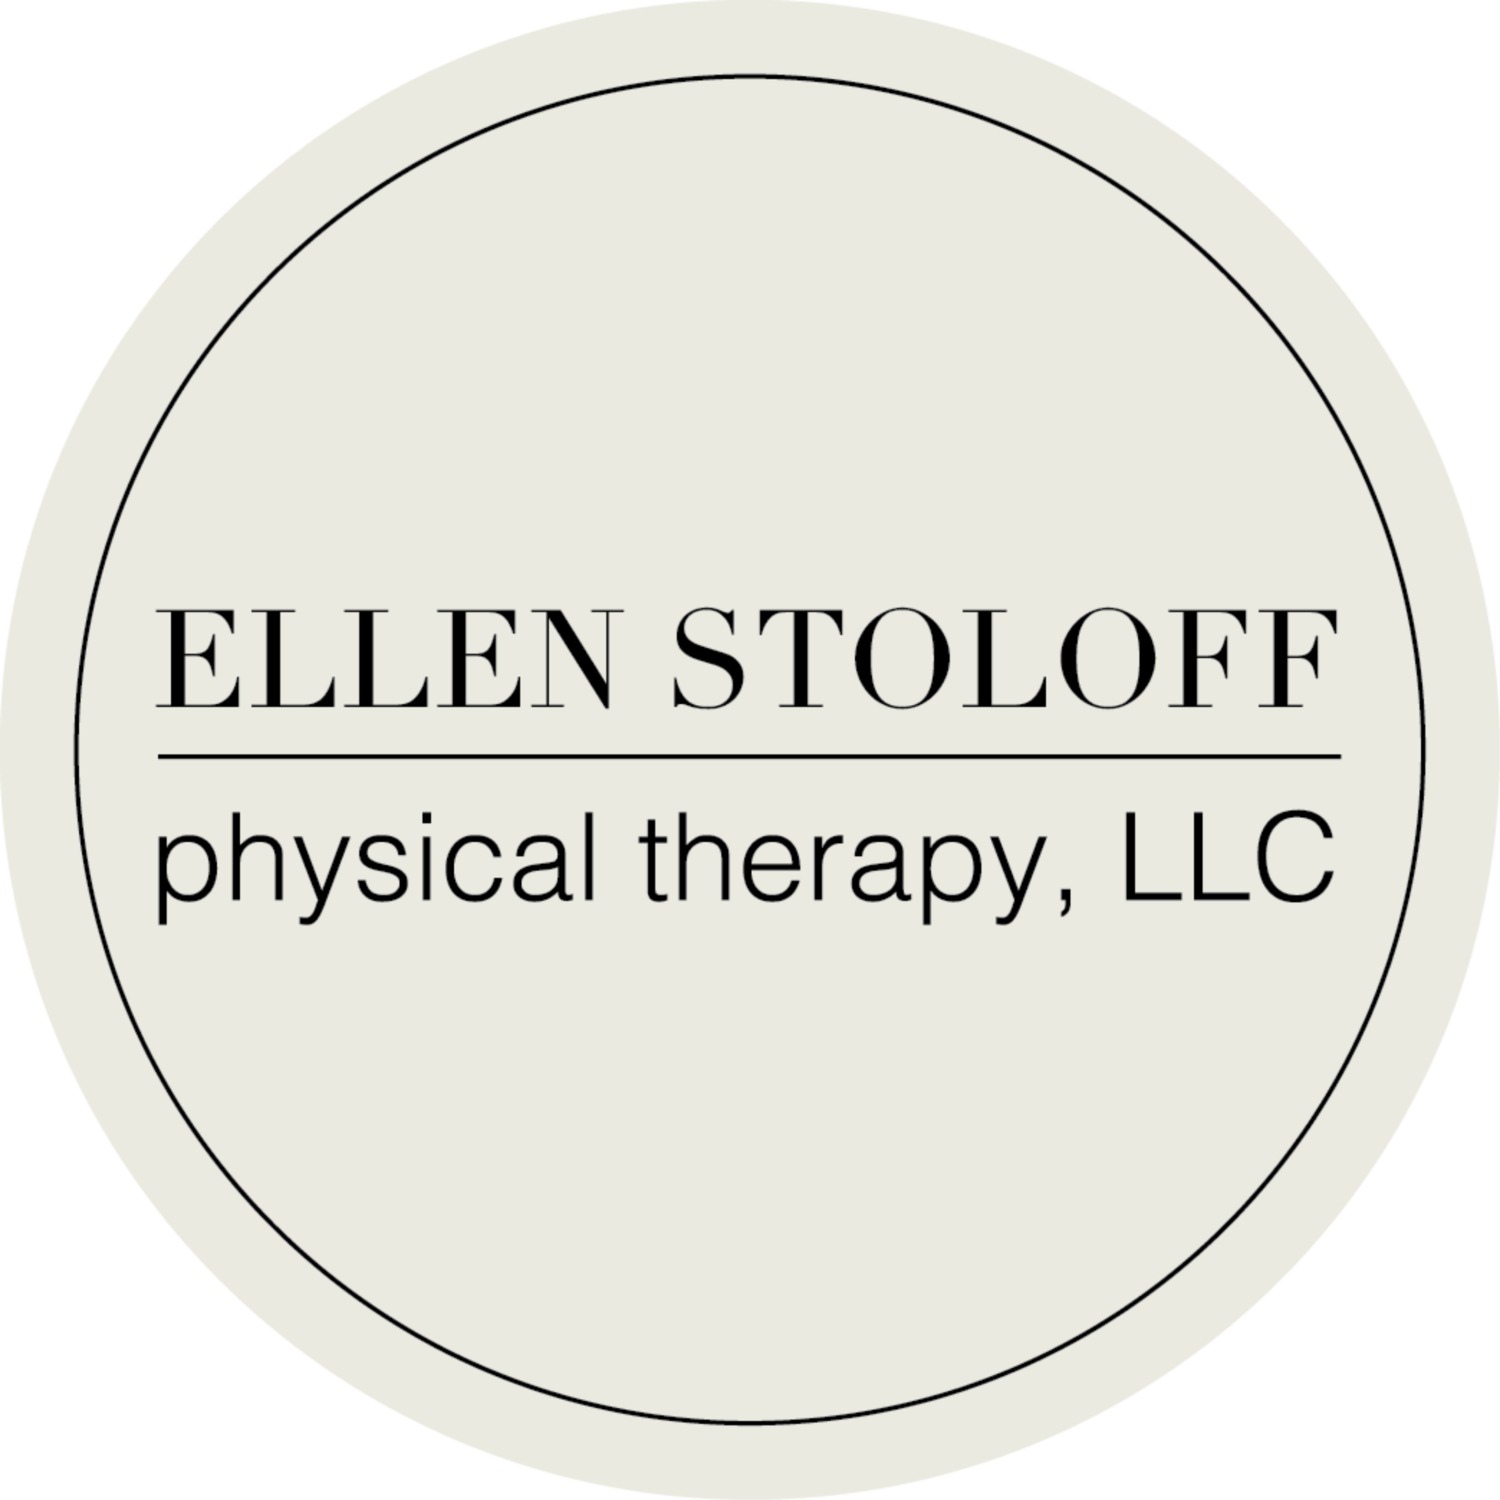 Ellen Stoloff Physical Therapy, LLC